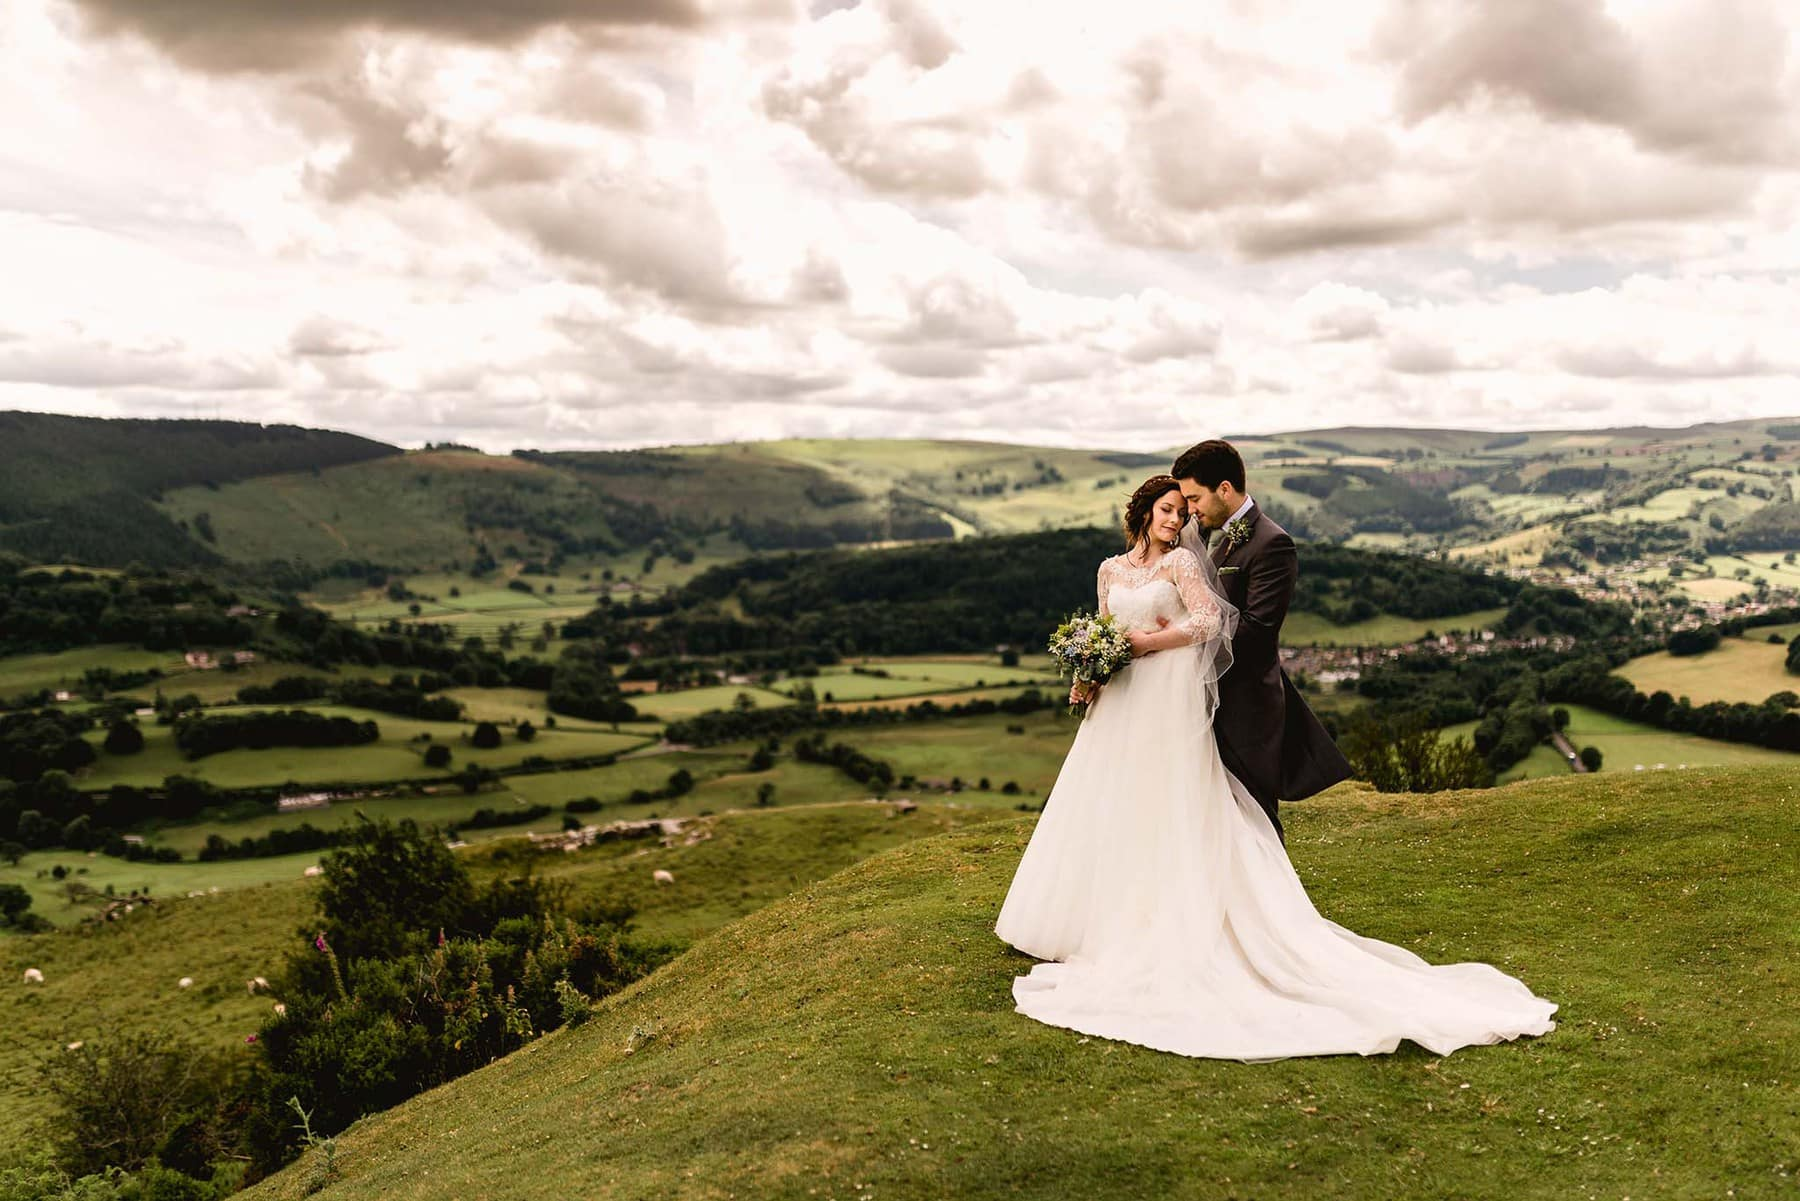 Ffion and Hefin's Wedding at Tyn Dwr Hall in Wales